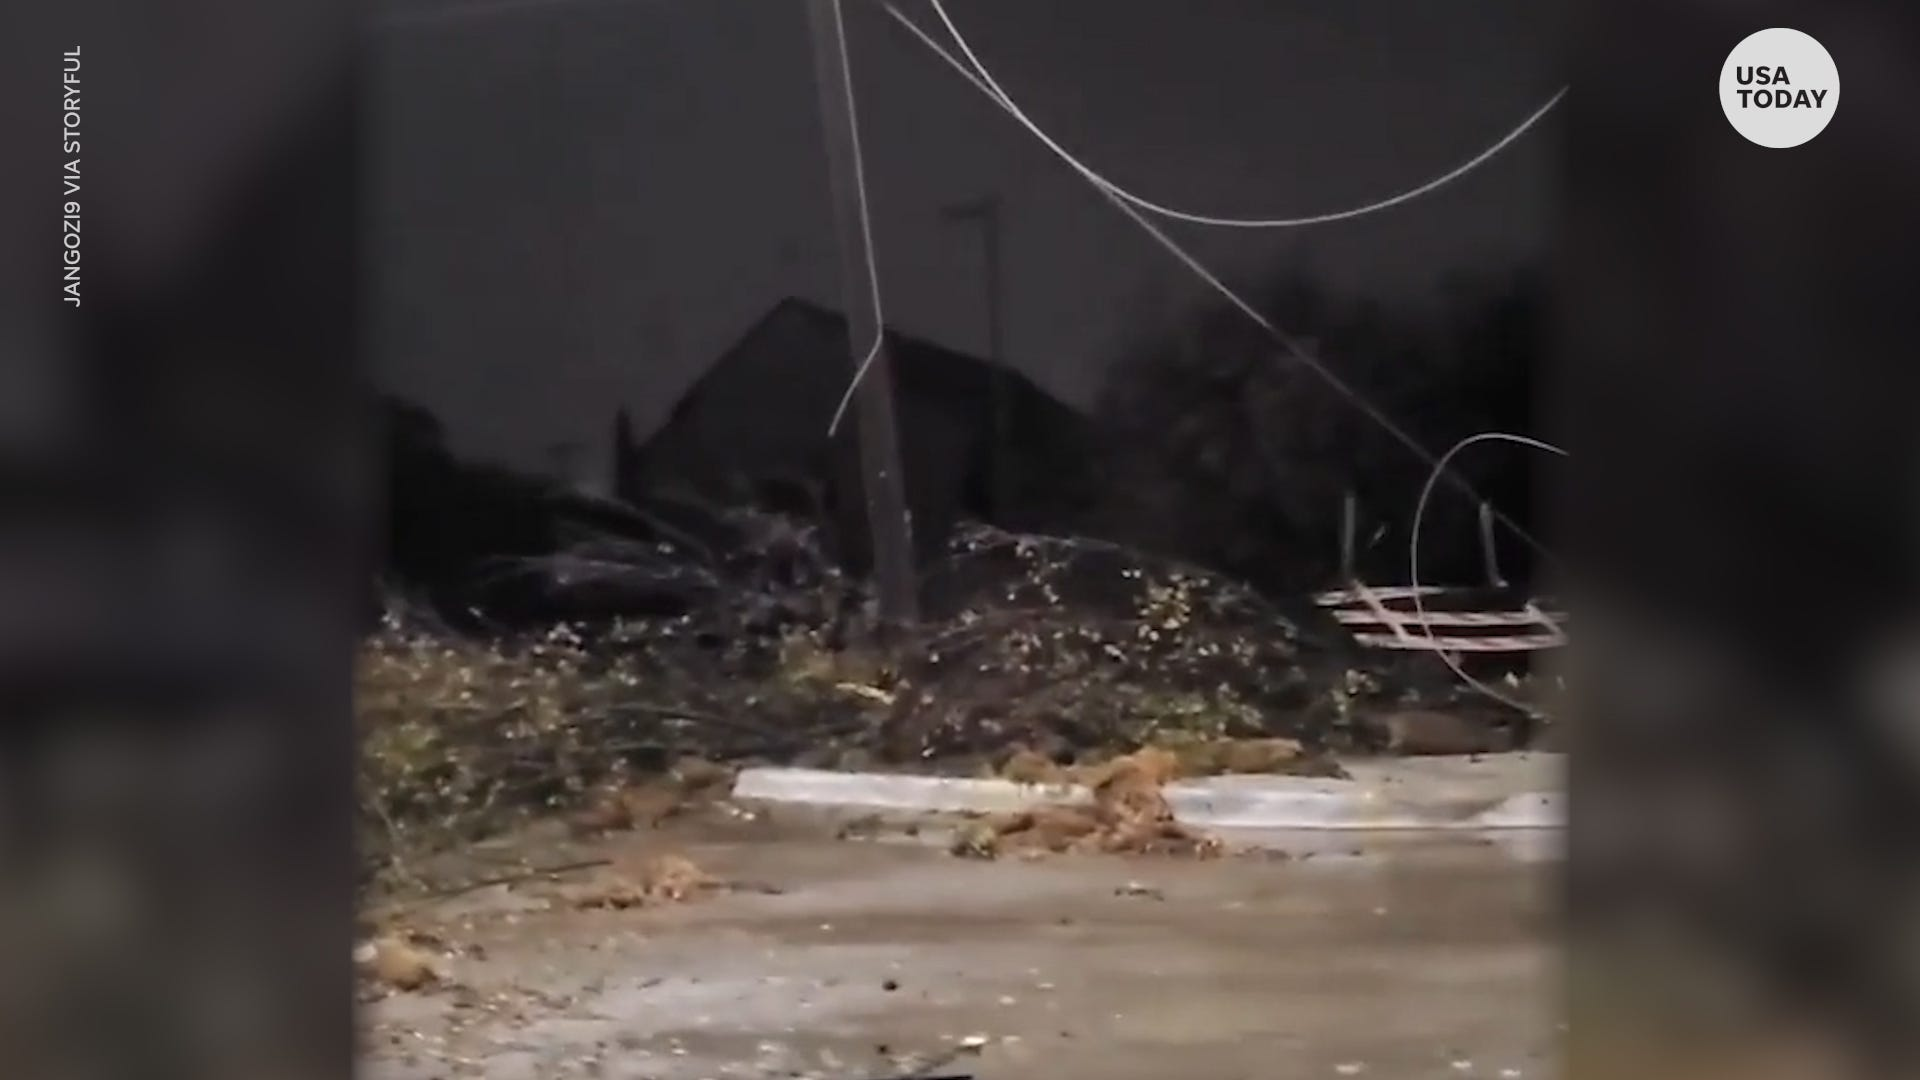 Major storm blows through Texas and causes damage just days before Thanksgiving